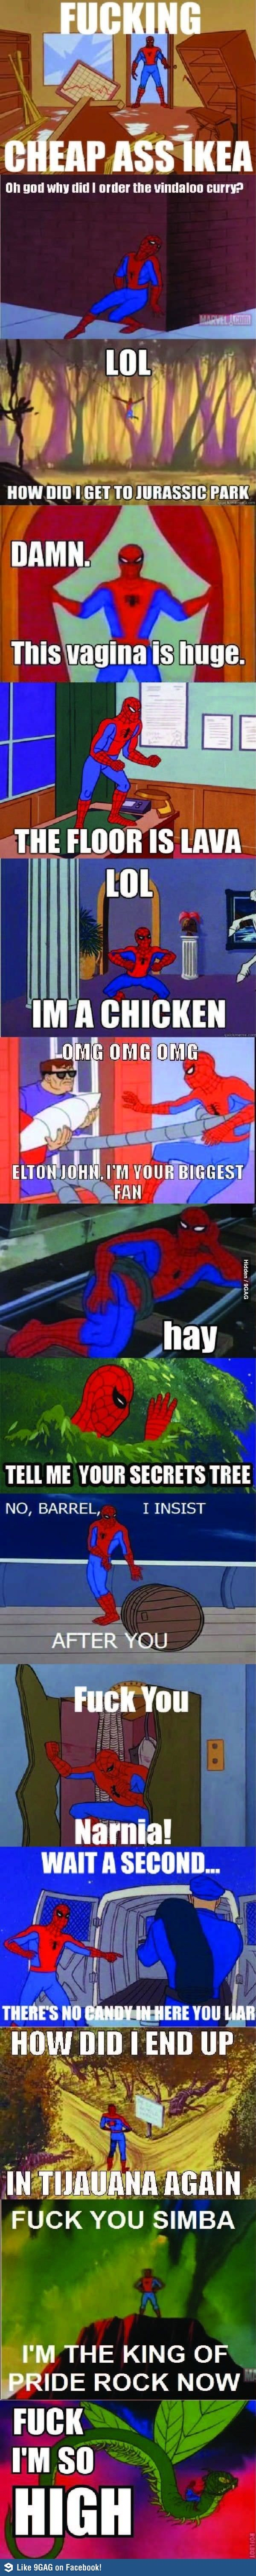 This is why I love Spider-Man-ignore the swear words